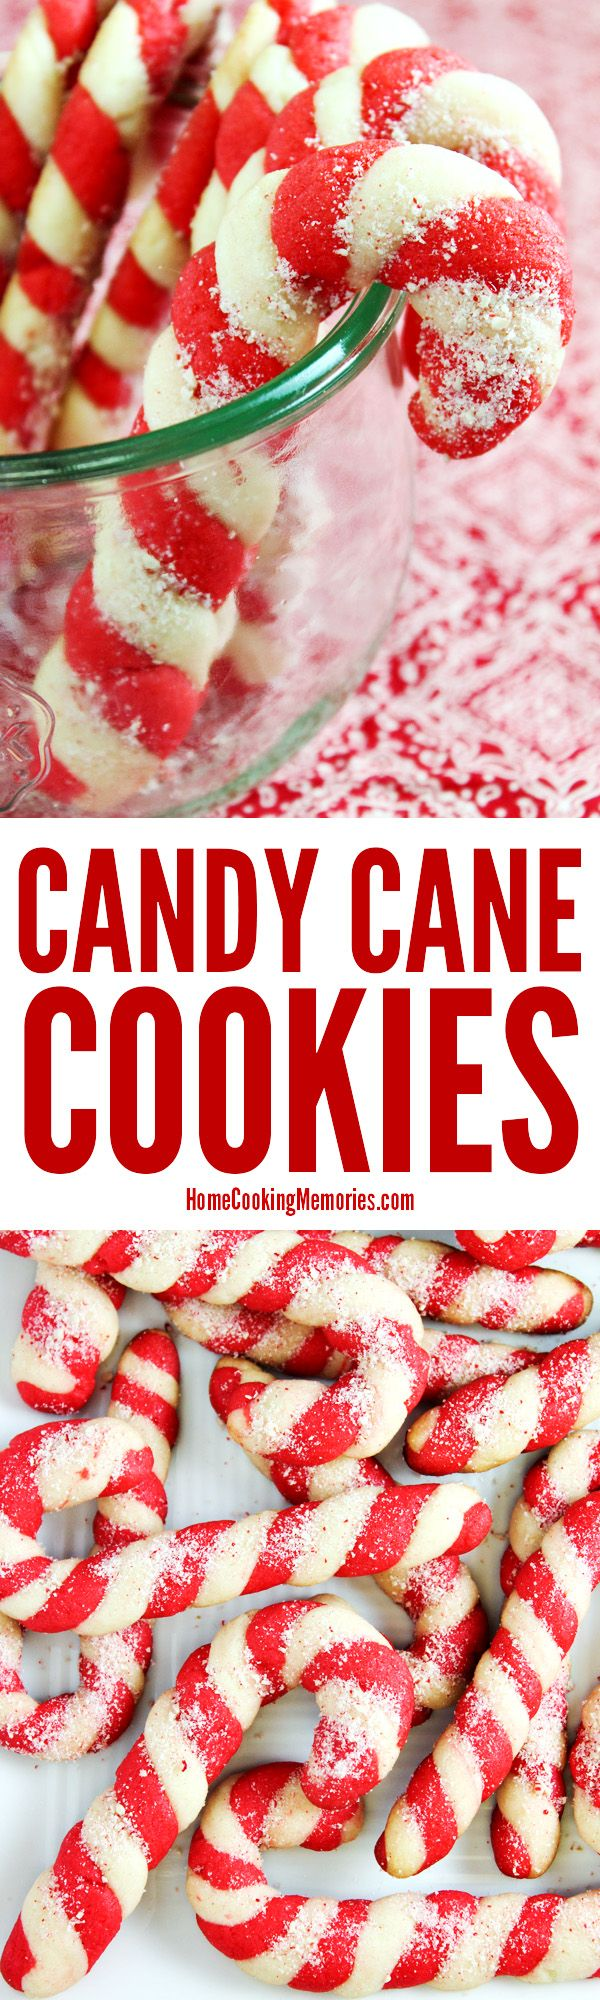 Christmas Candy Cane Cookies recipe! Made from an easy cookie dough recipe with plenty of festive peppermint flavor. The colorful dough is twisted to look like a candy cane. A favorite at holiday part (Christmas Bake Exchange)